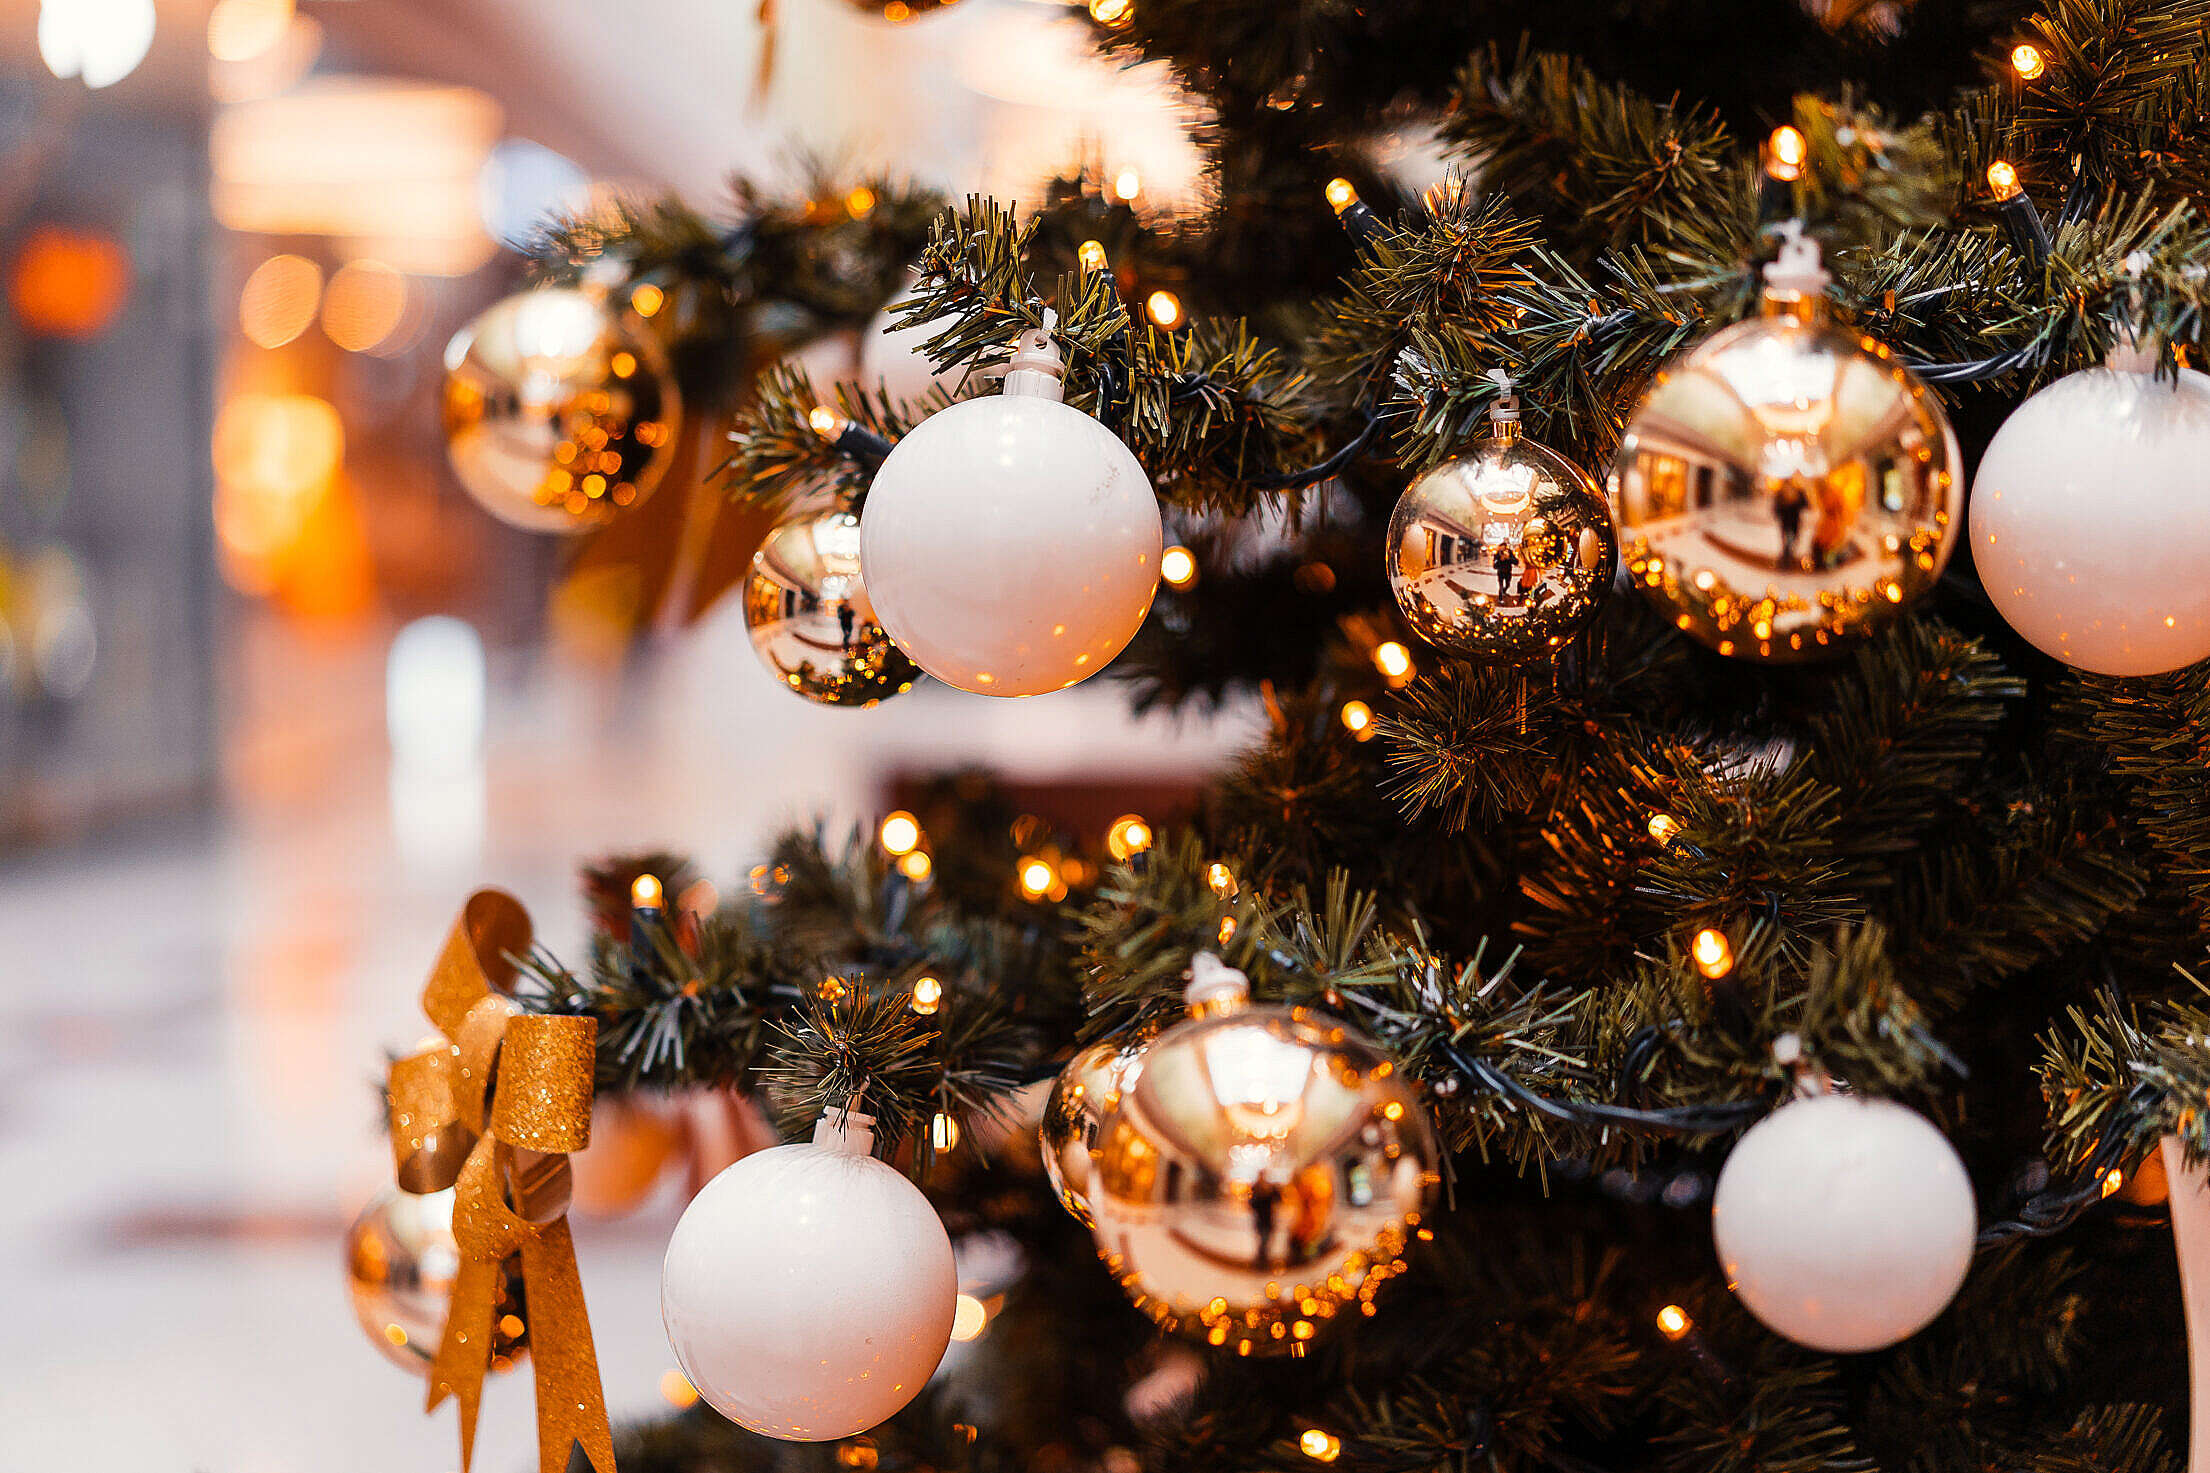 Decorated Christmas Tree in a Mall Close Up Free Stock Photo